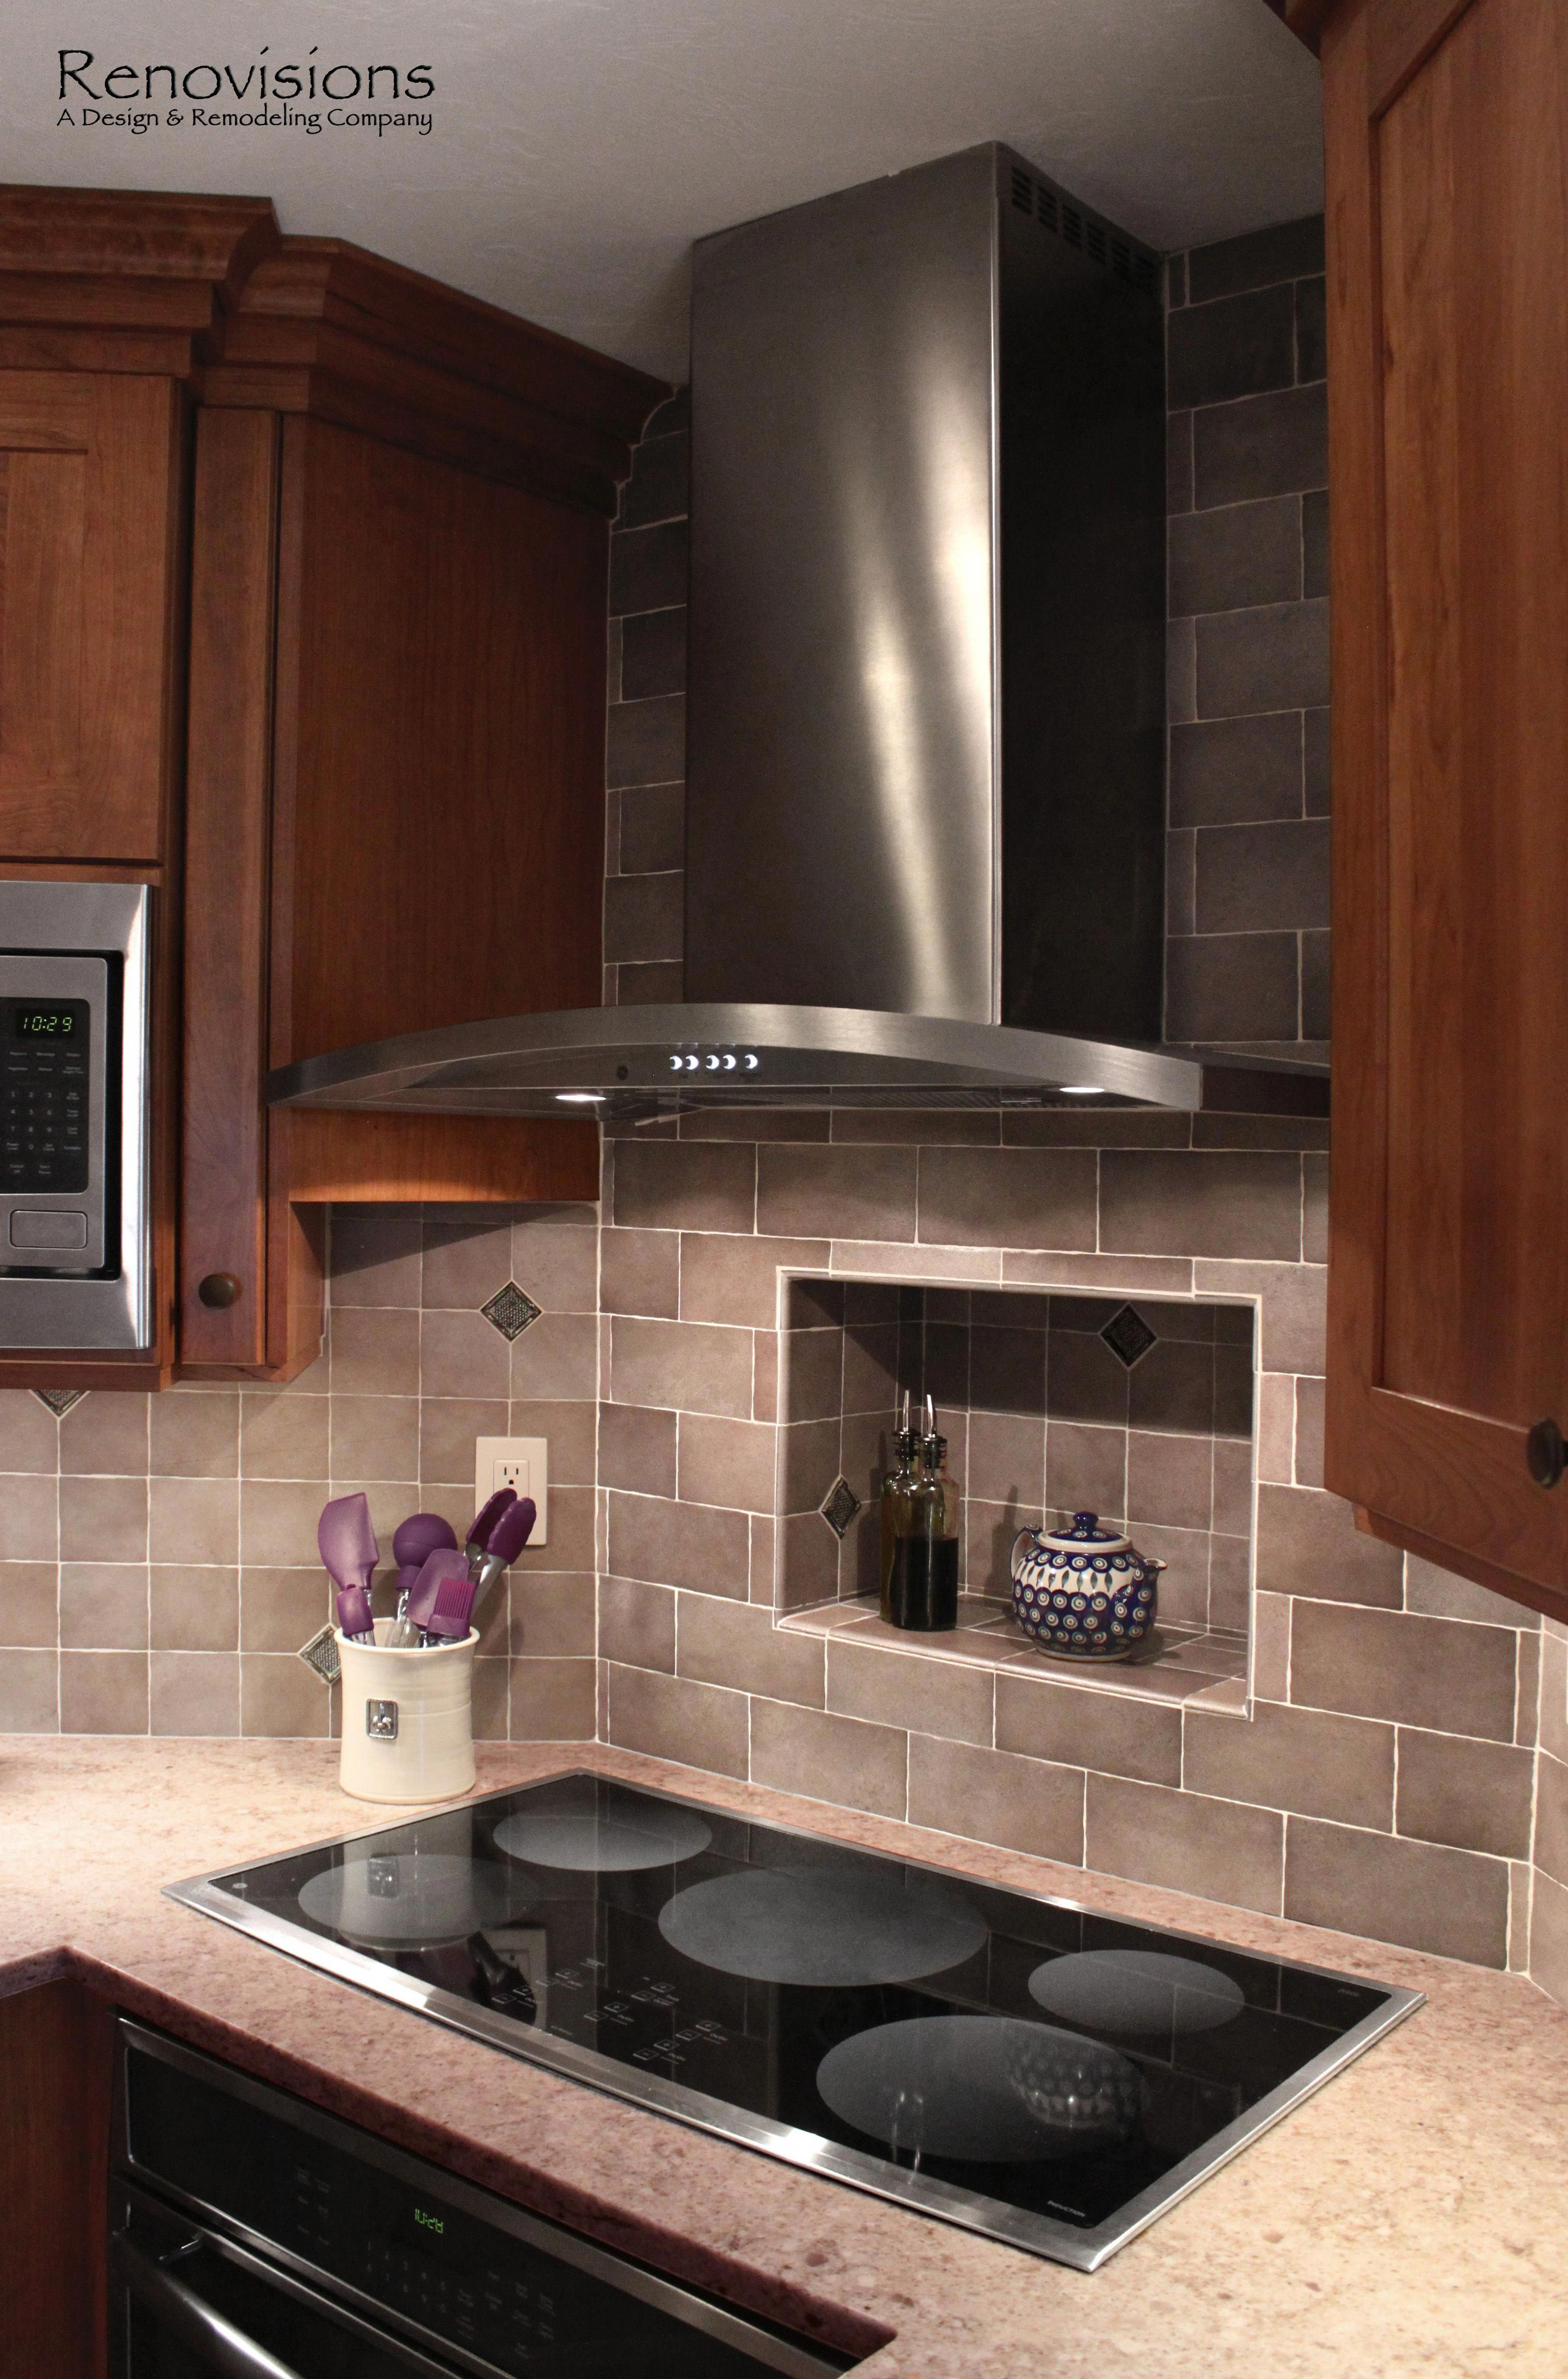 Kitchen remodel by renovisions induction cooktop stainless steel appliances cherry cabinets shaker cabinets under cabinet lights tuscan clay look